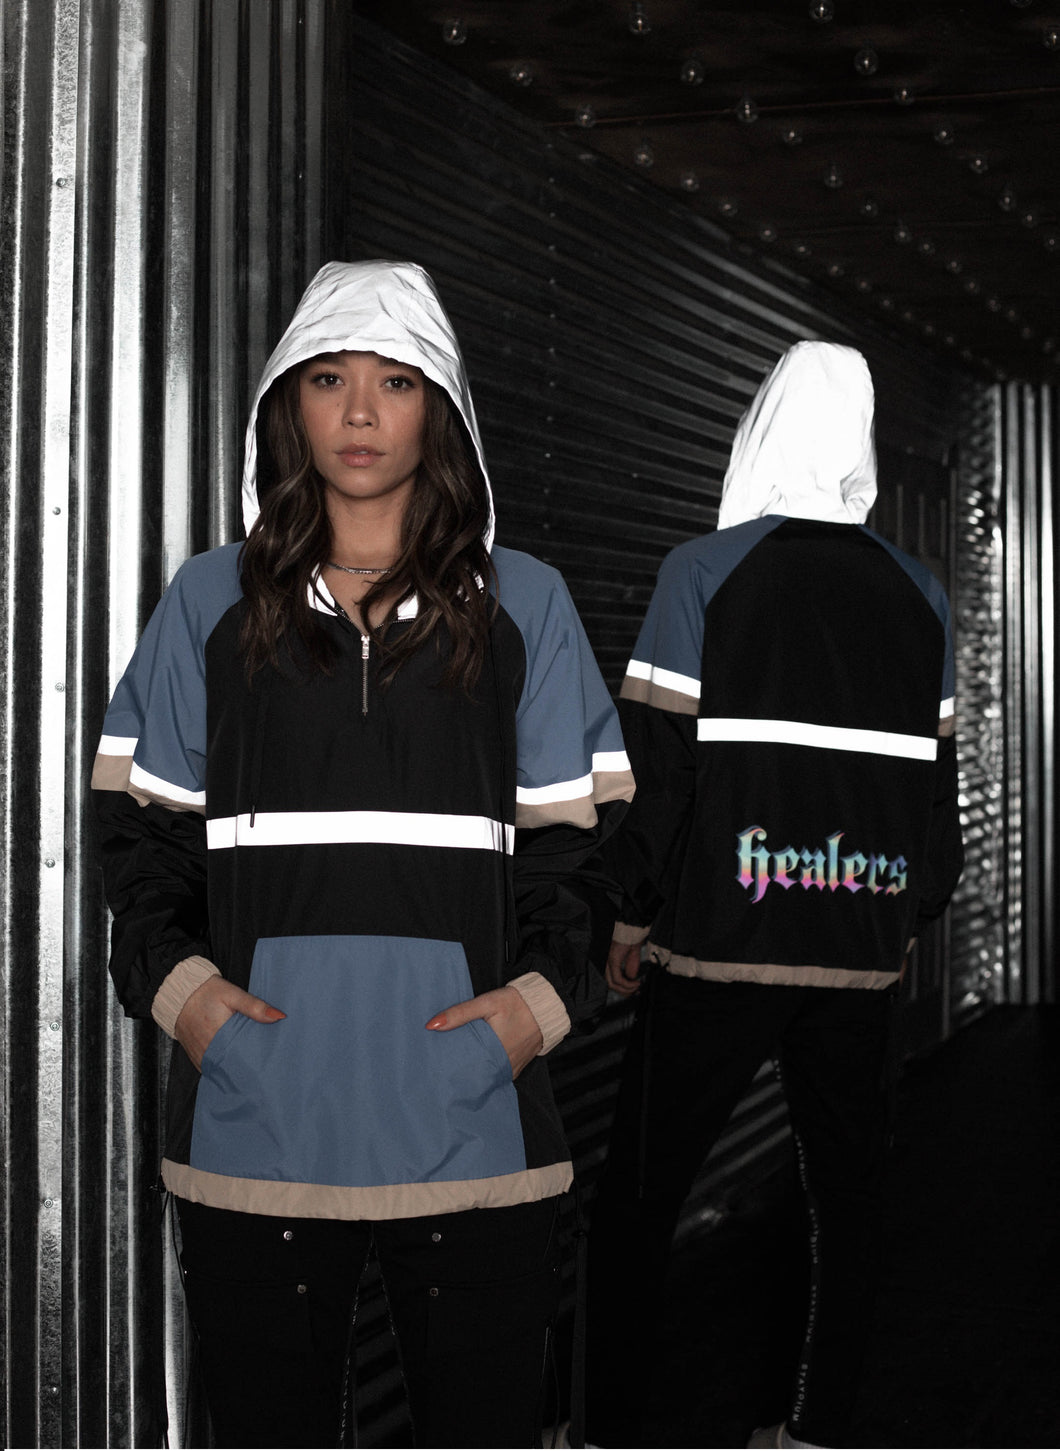 Healers x Staydium Color Block Windbreakers